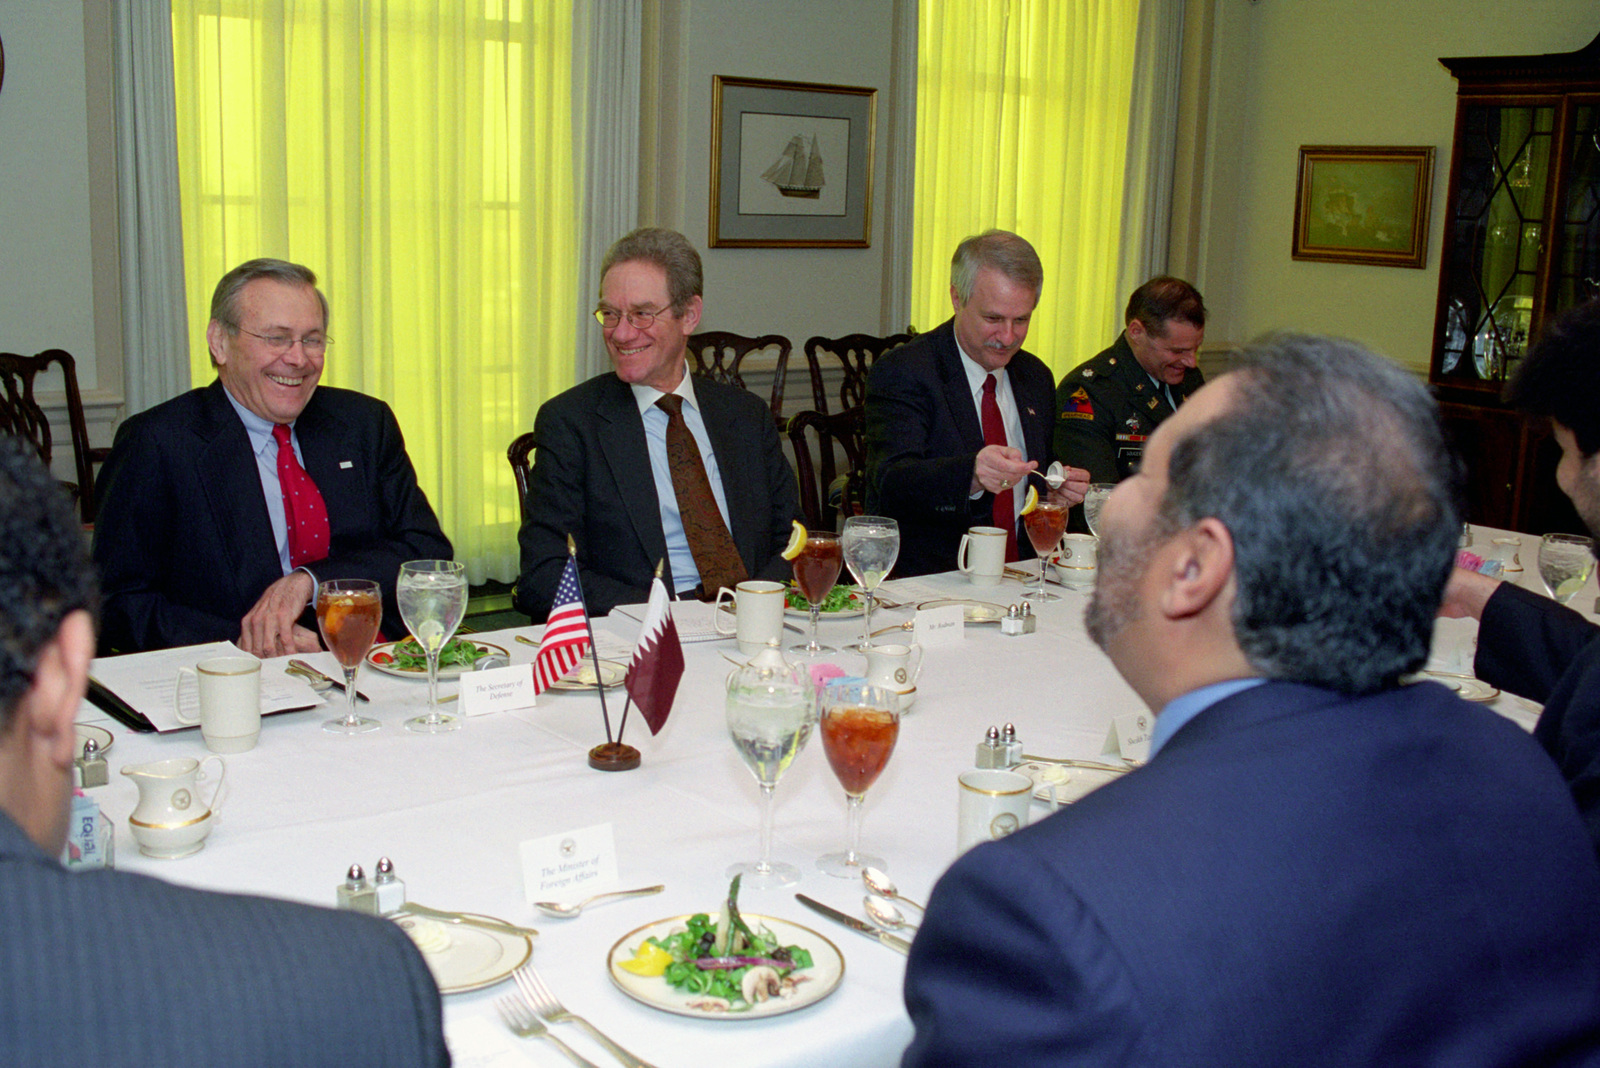 The Honorable Donald H. Rumsfeld (left), U.S. Secretary of Defense, laughs at a working lunch with (left to right) Peter Rodman, Assistant U.S. Secretary of Defense for International Security Affairs, Dr. William Luti, Deputy Assistant Secretary for Near Eastern and South Asian Affairs, U.S. Army LT. COL. Steve Soucek, the Country Director for Qatar and Foreign Minister Sheikh Hamad of Qatar (right front) at the Pentagon, where they are discussing important Middle East issues, March 7, 2003. (DoD photo by Robert D. Ward) (Released)